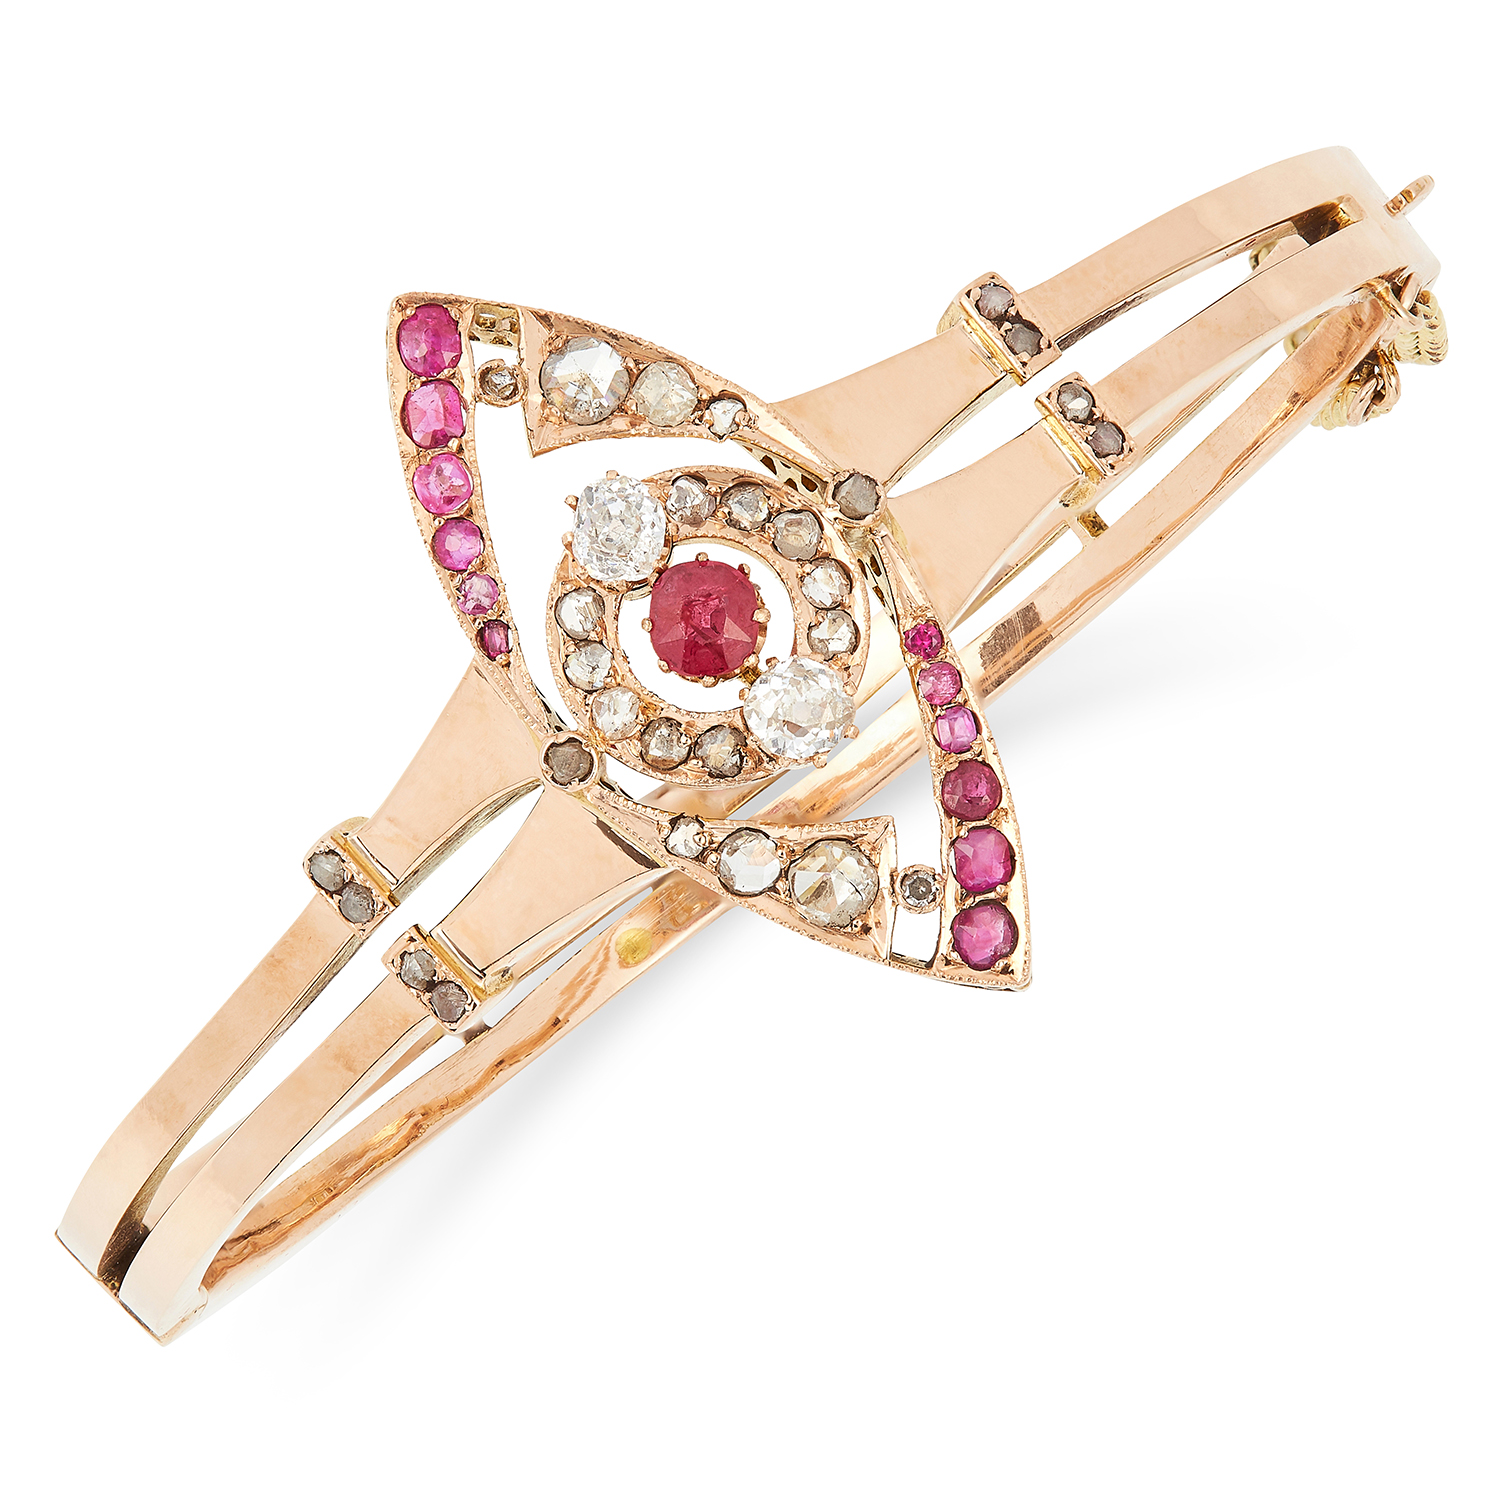 ANTIQUE RUBY AND DIAMOND BANGLE the marquise face is set with cushion cut rubies and old and rose